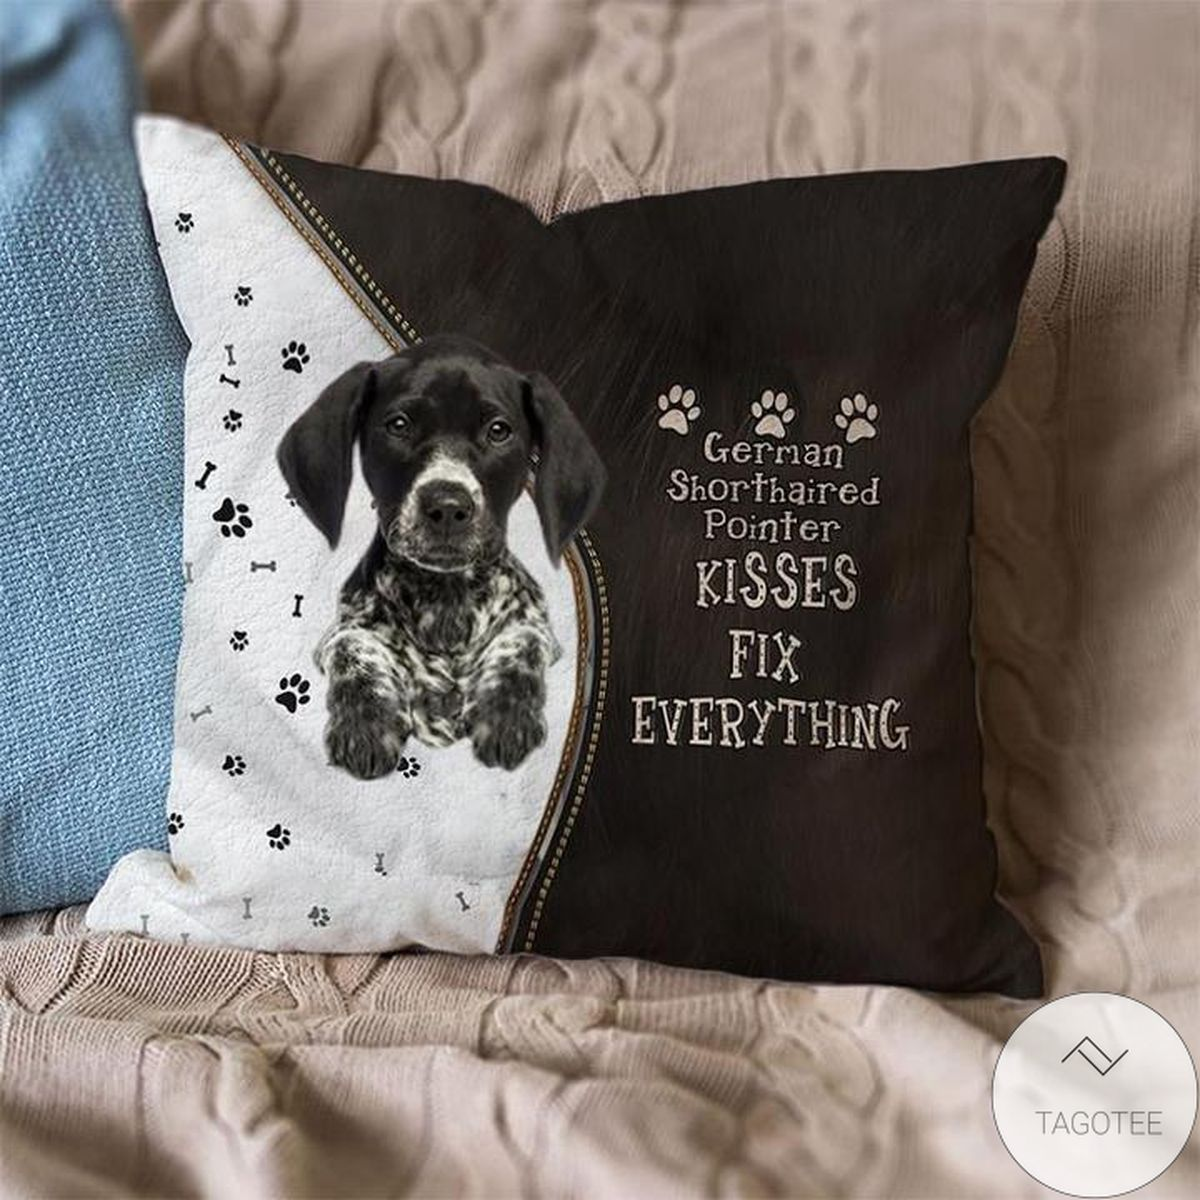 Funny Tee German Shorthaired Pointer Kisses Fix Everything Pillowcase